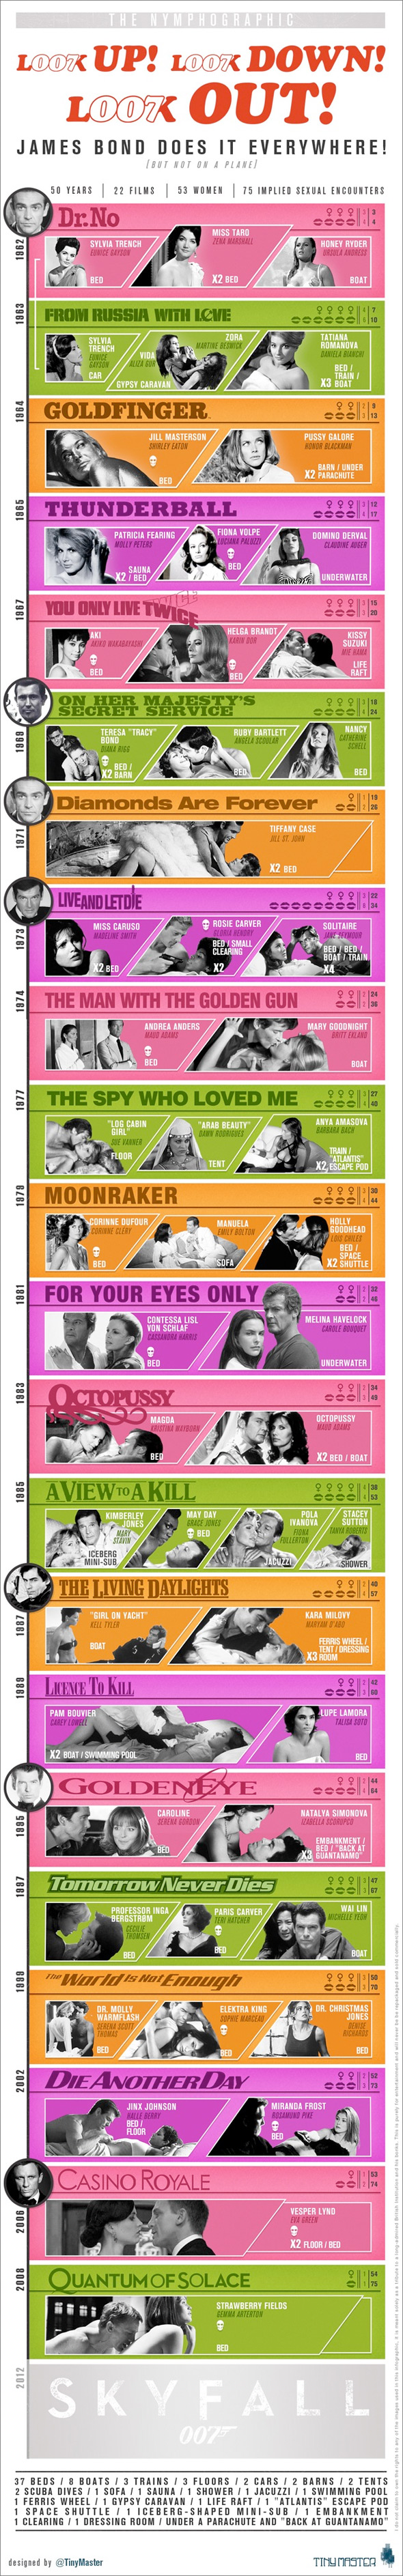 James Bond Love Life-Infographic